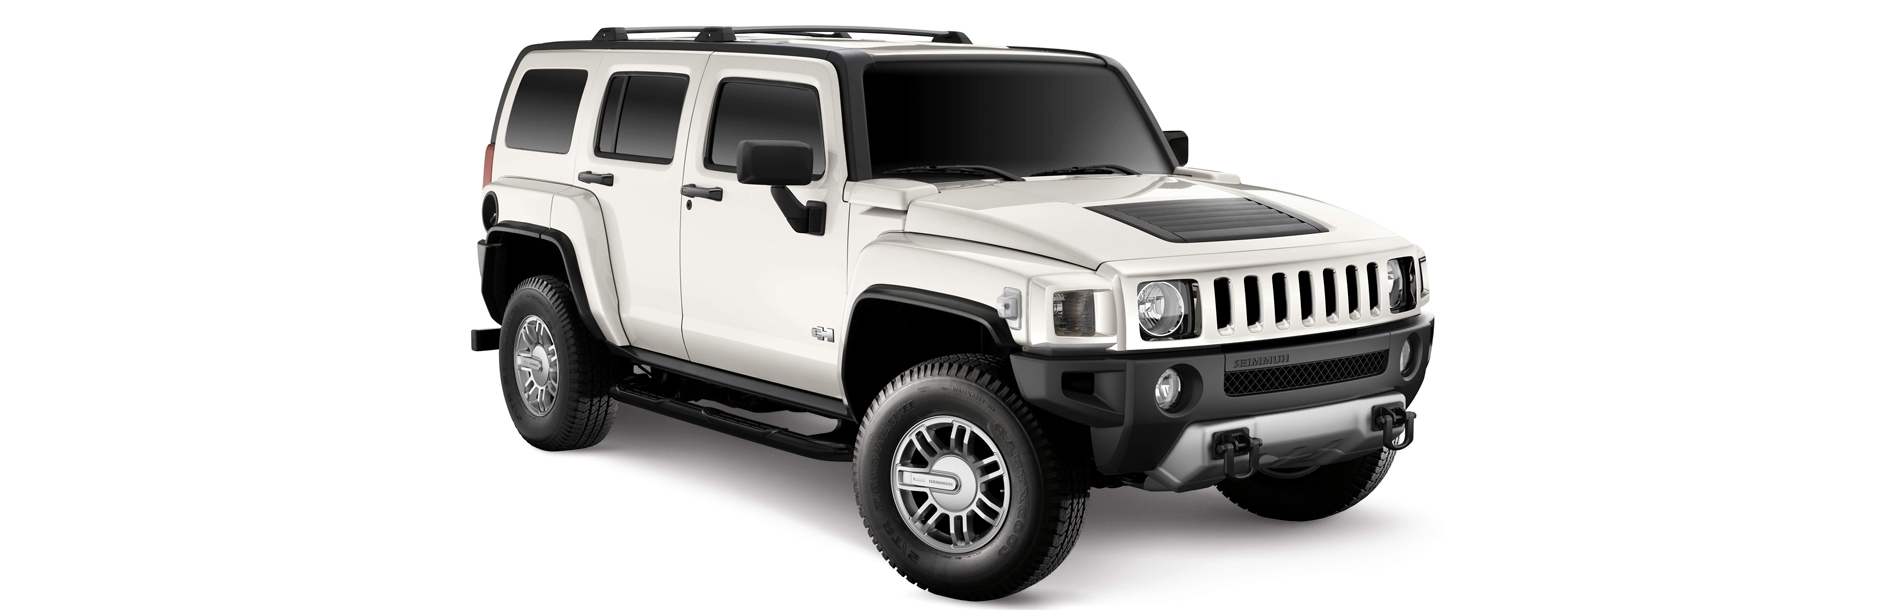 Hummer Alloy Wheels and Tyre Packages.